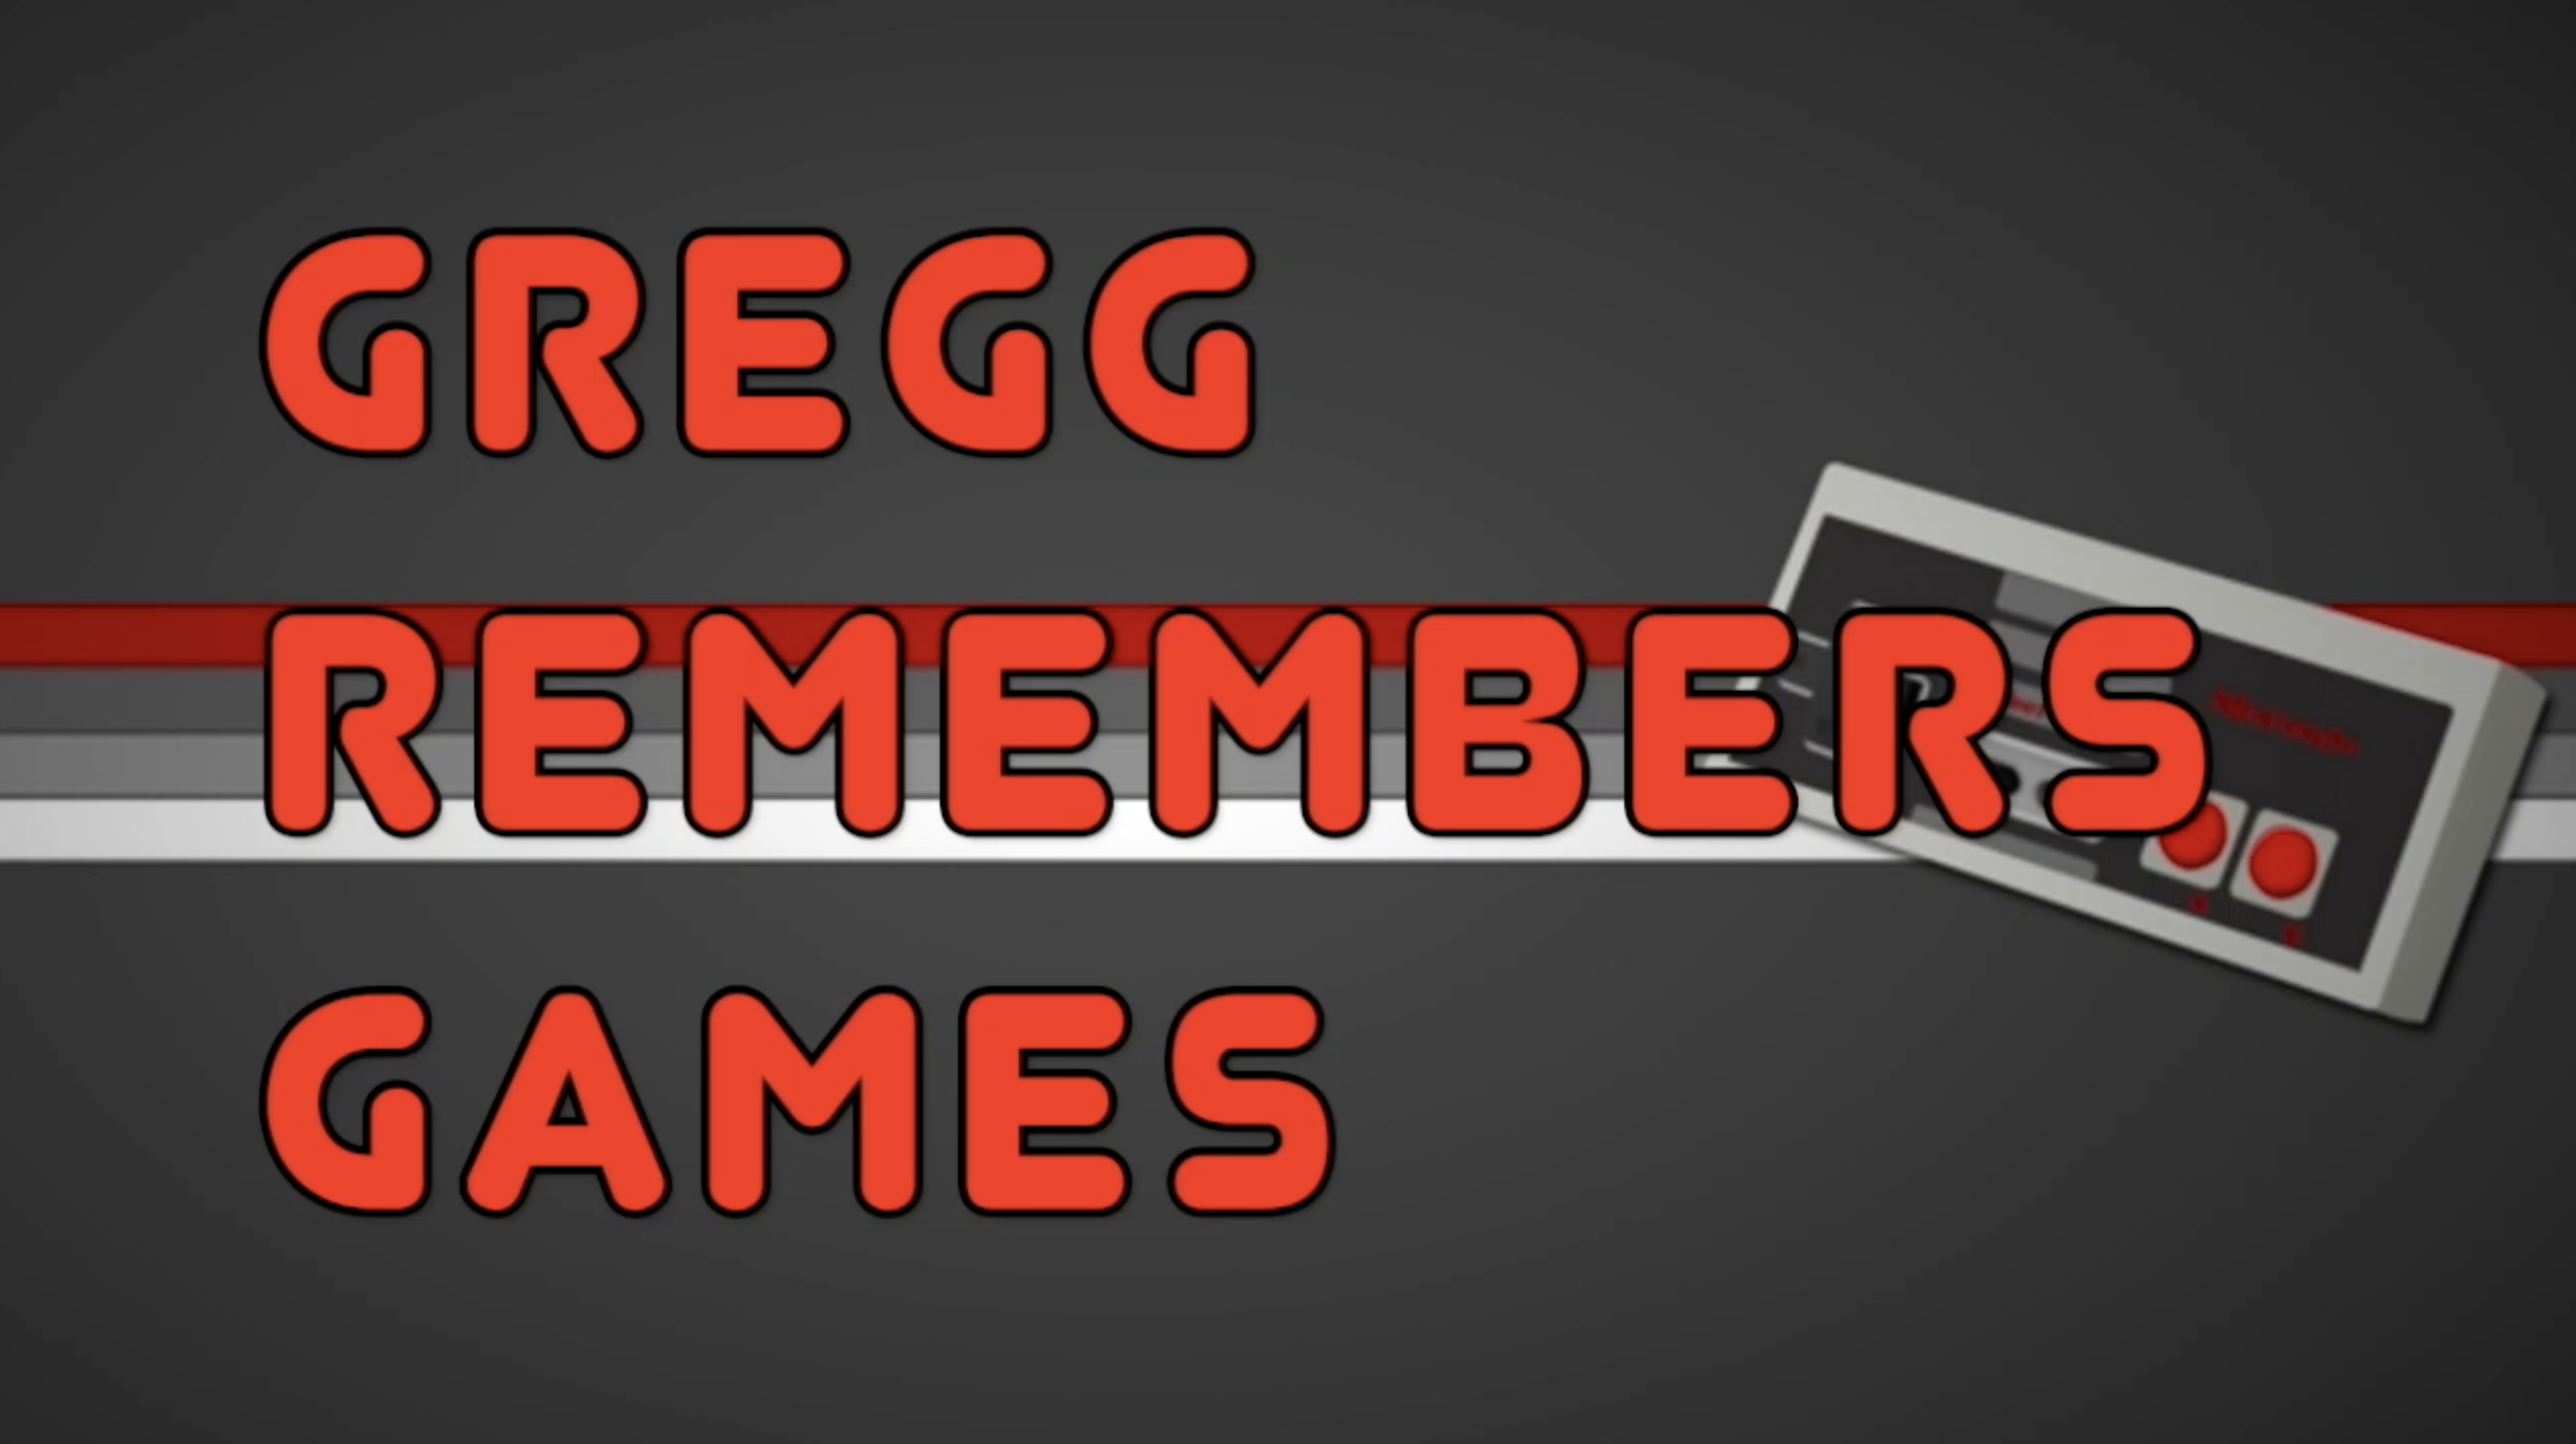 Watch Review: Gregg Remembers Games | Prime Video